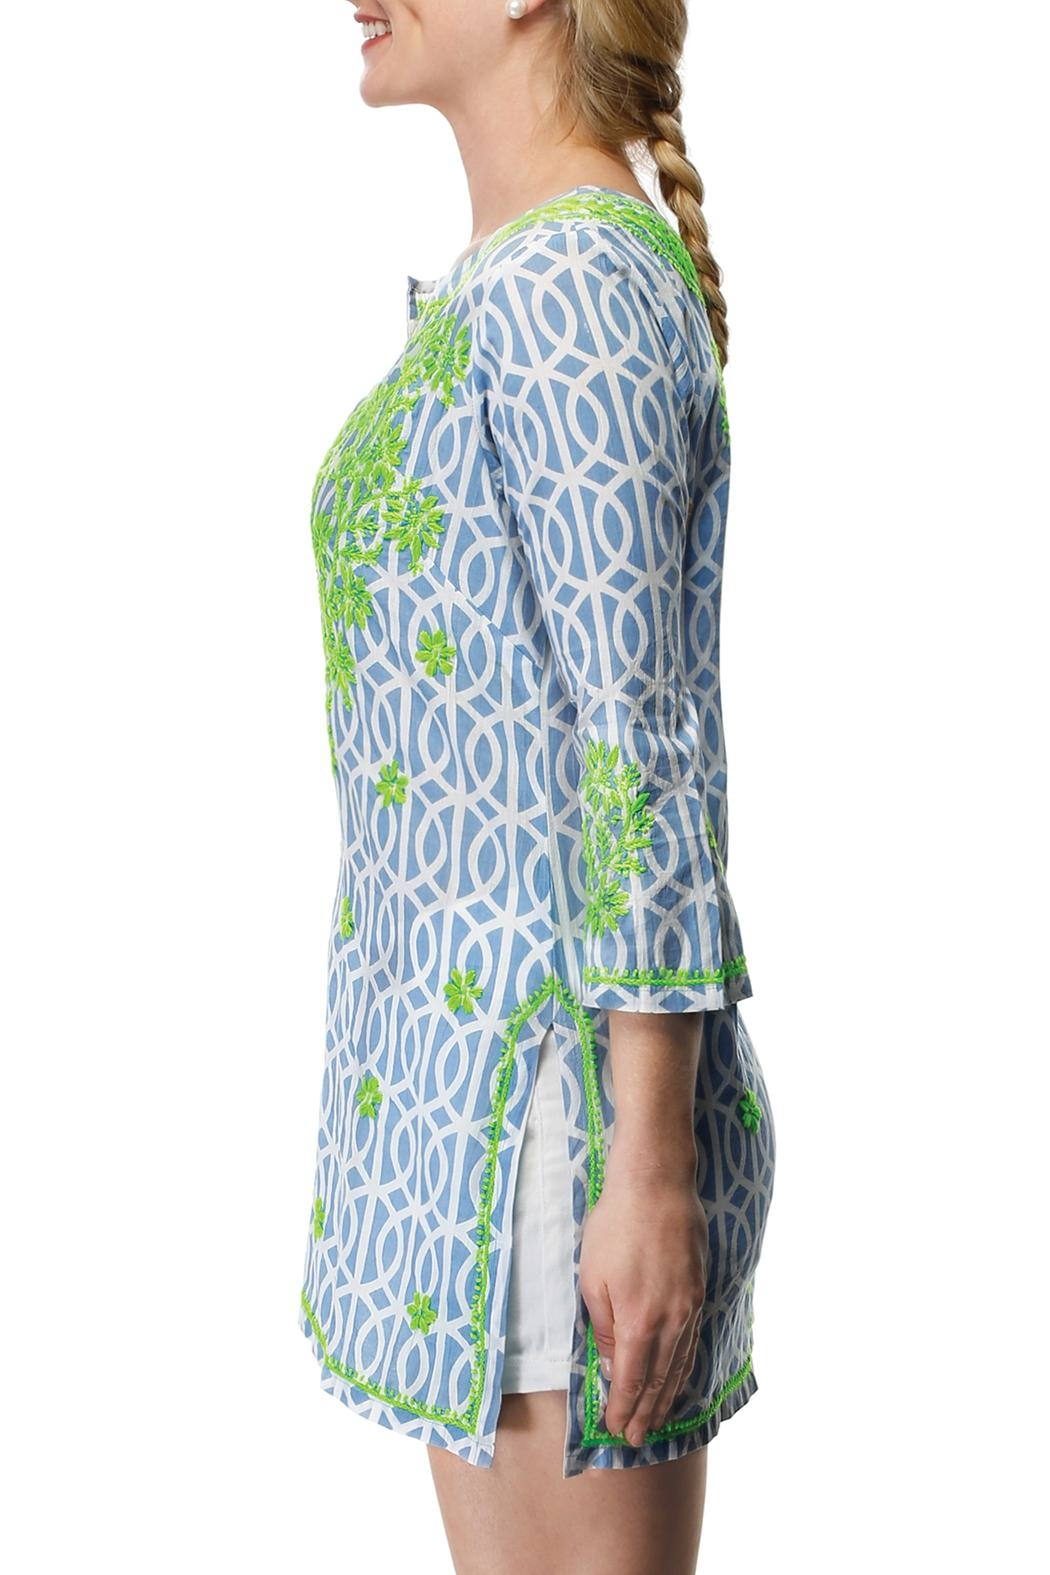 Gretchen Scott Geo Embroidered Tunic - Side Cropped Image